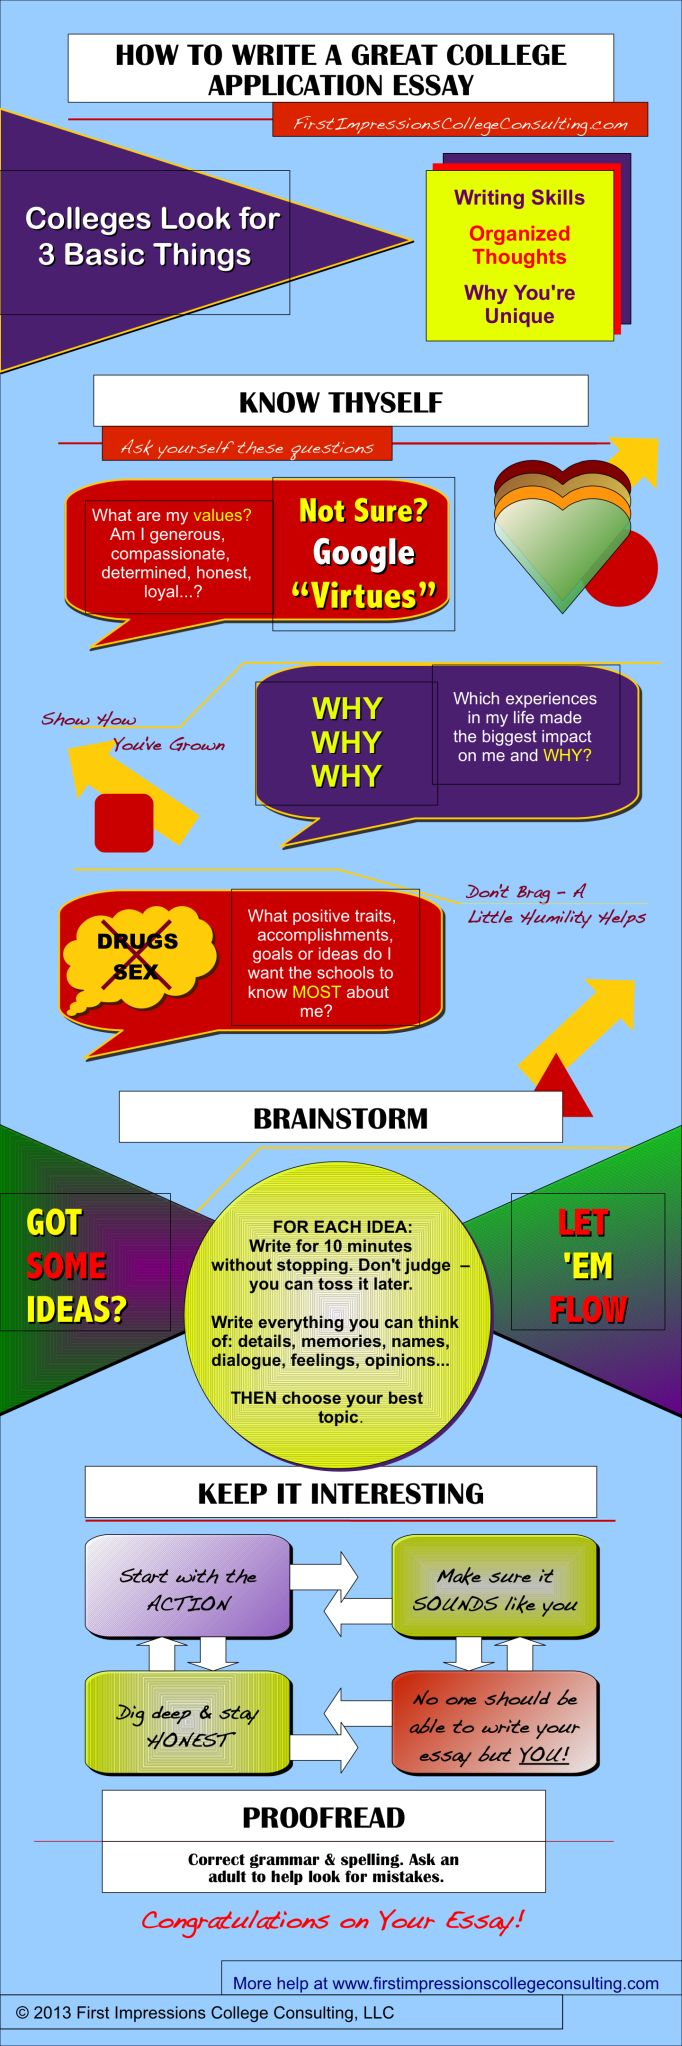 17 best ideas about essay writing essay writing here it is my first infographic i won t tell you how long it took me but it was worth it enjoy sharon epstein is owner of first impressions college